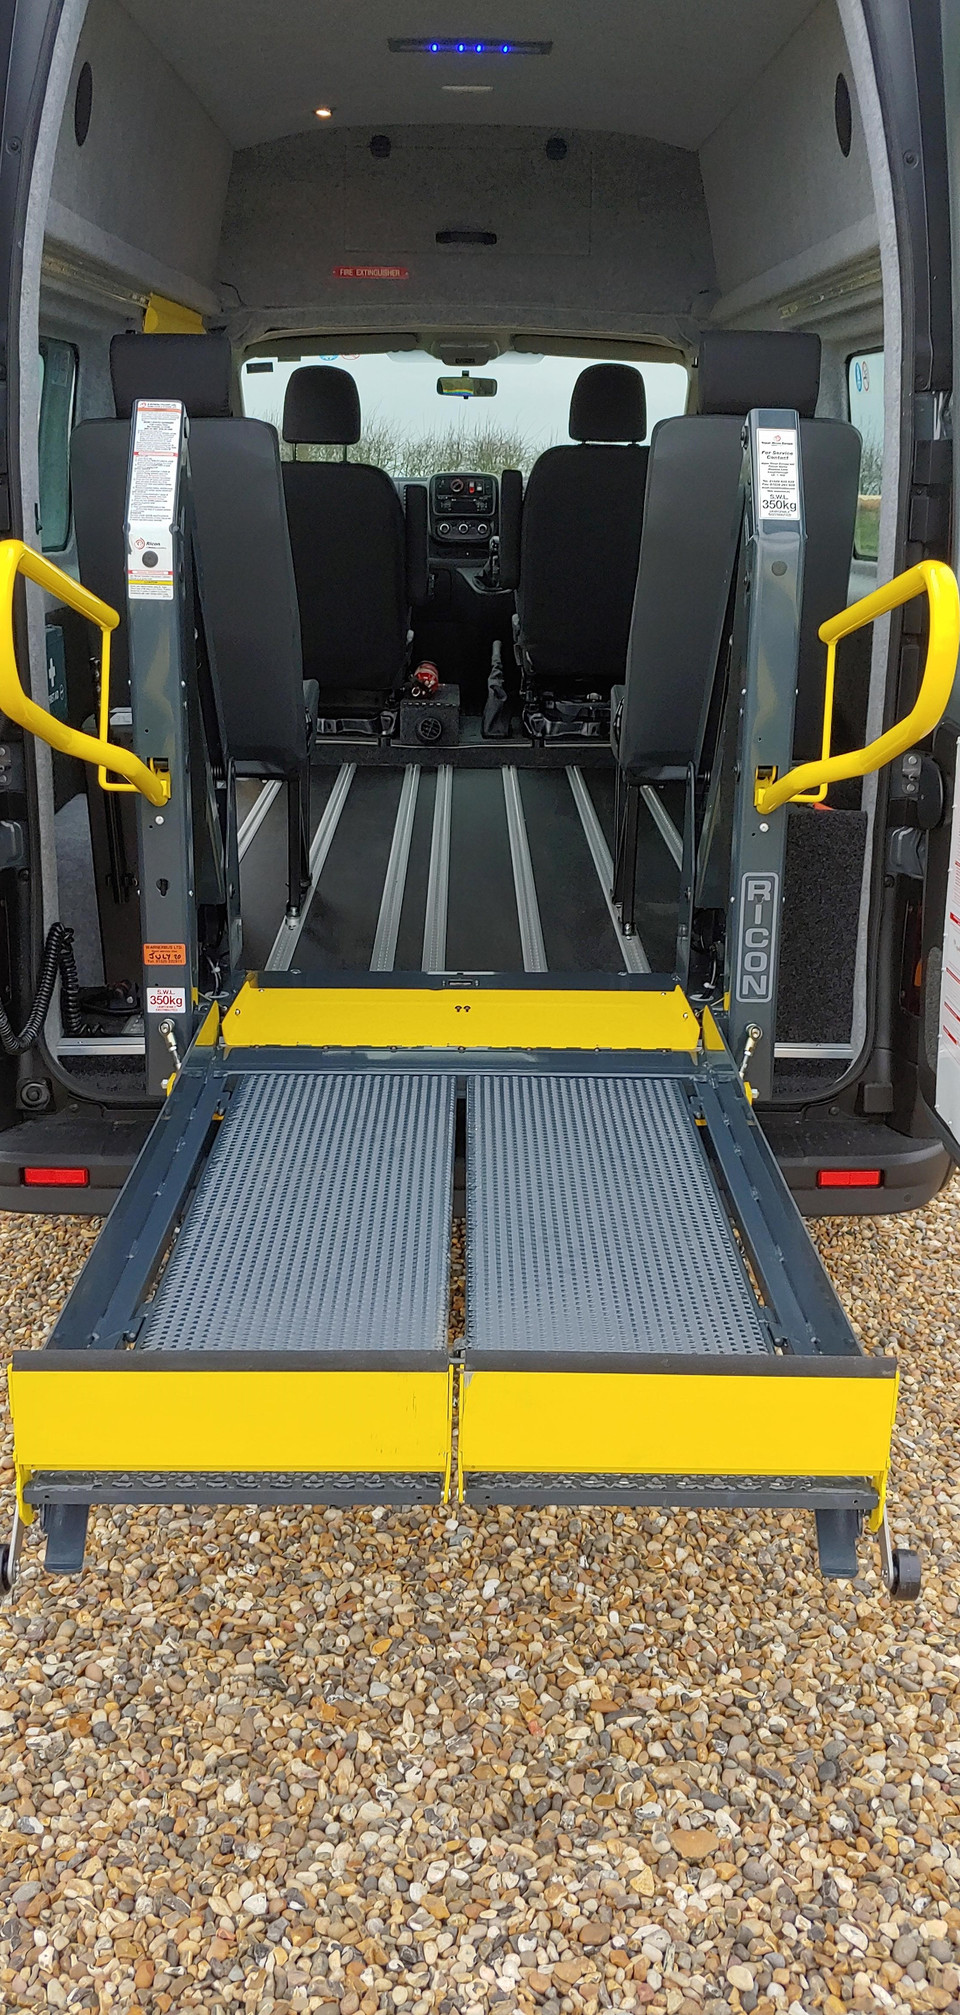 Rison tail-lift floor level on Renault Trafic Minibus conversion